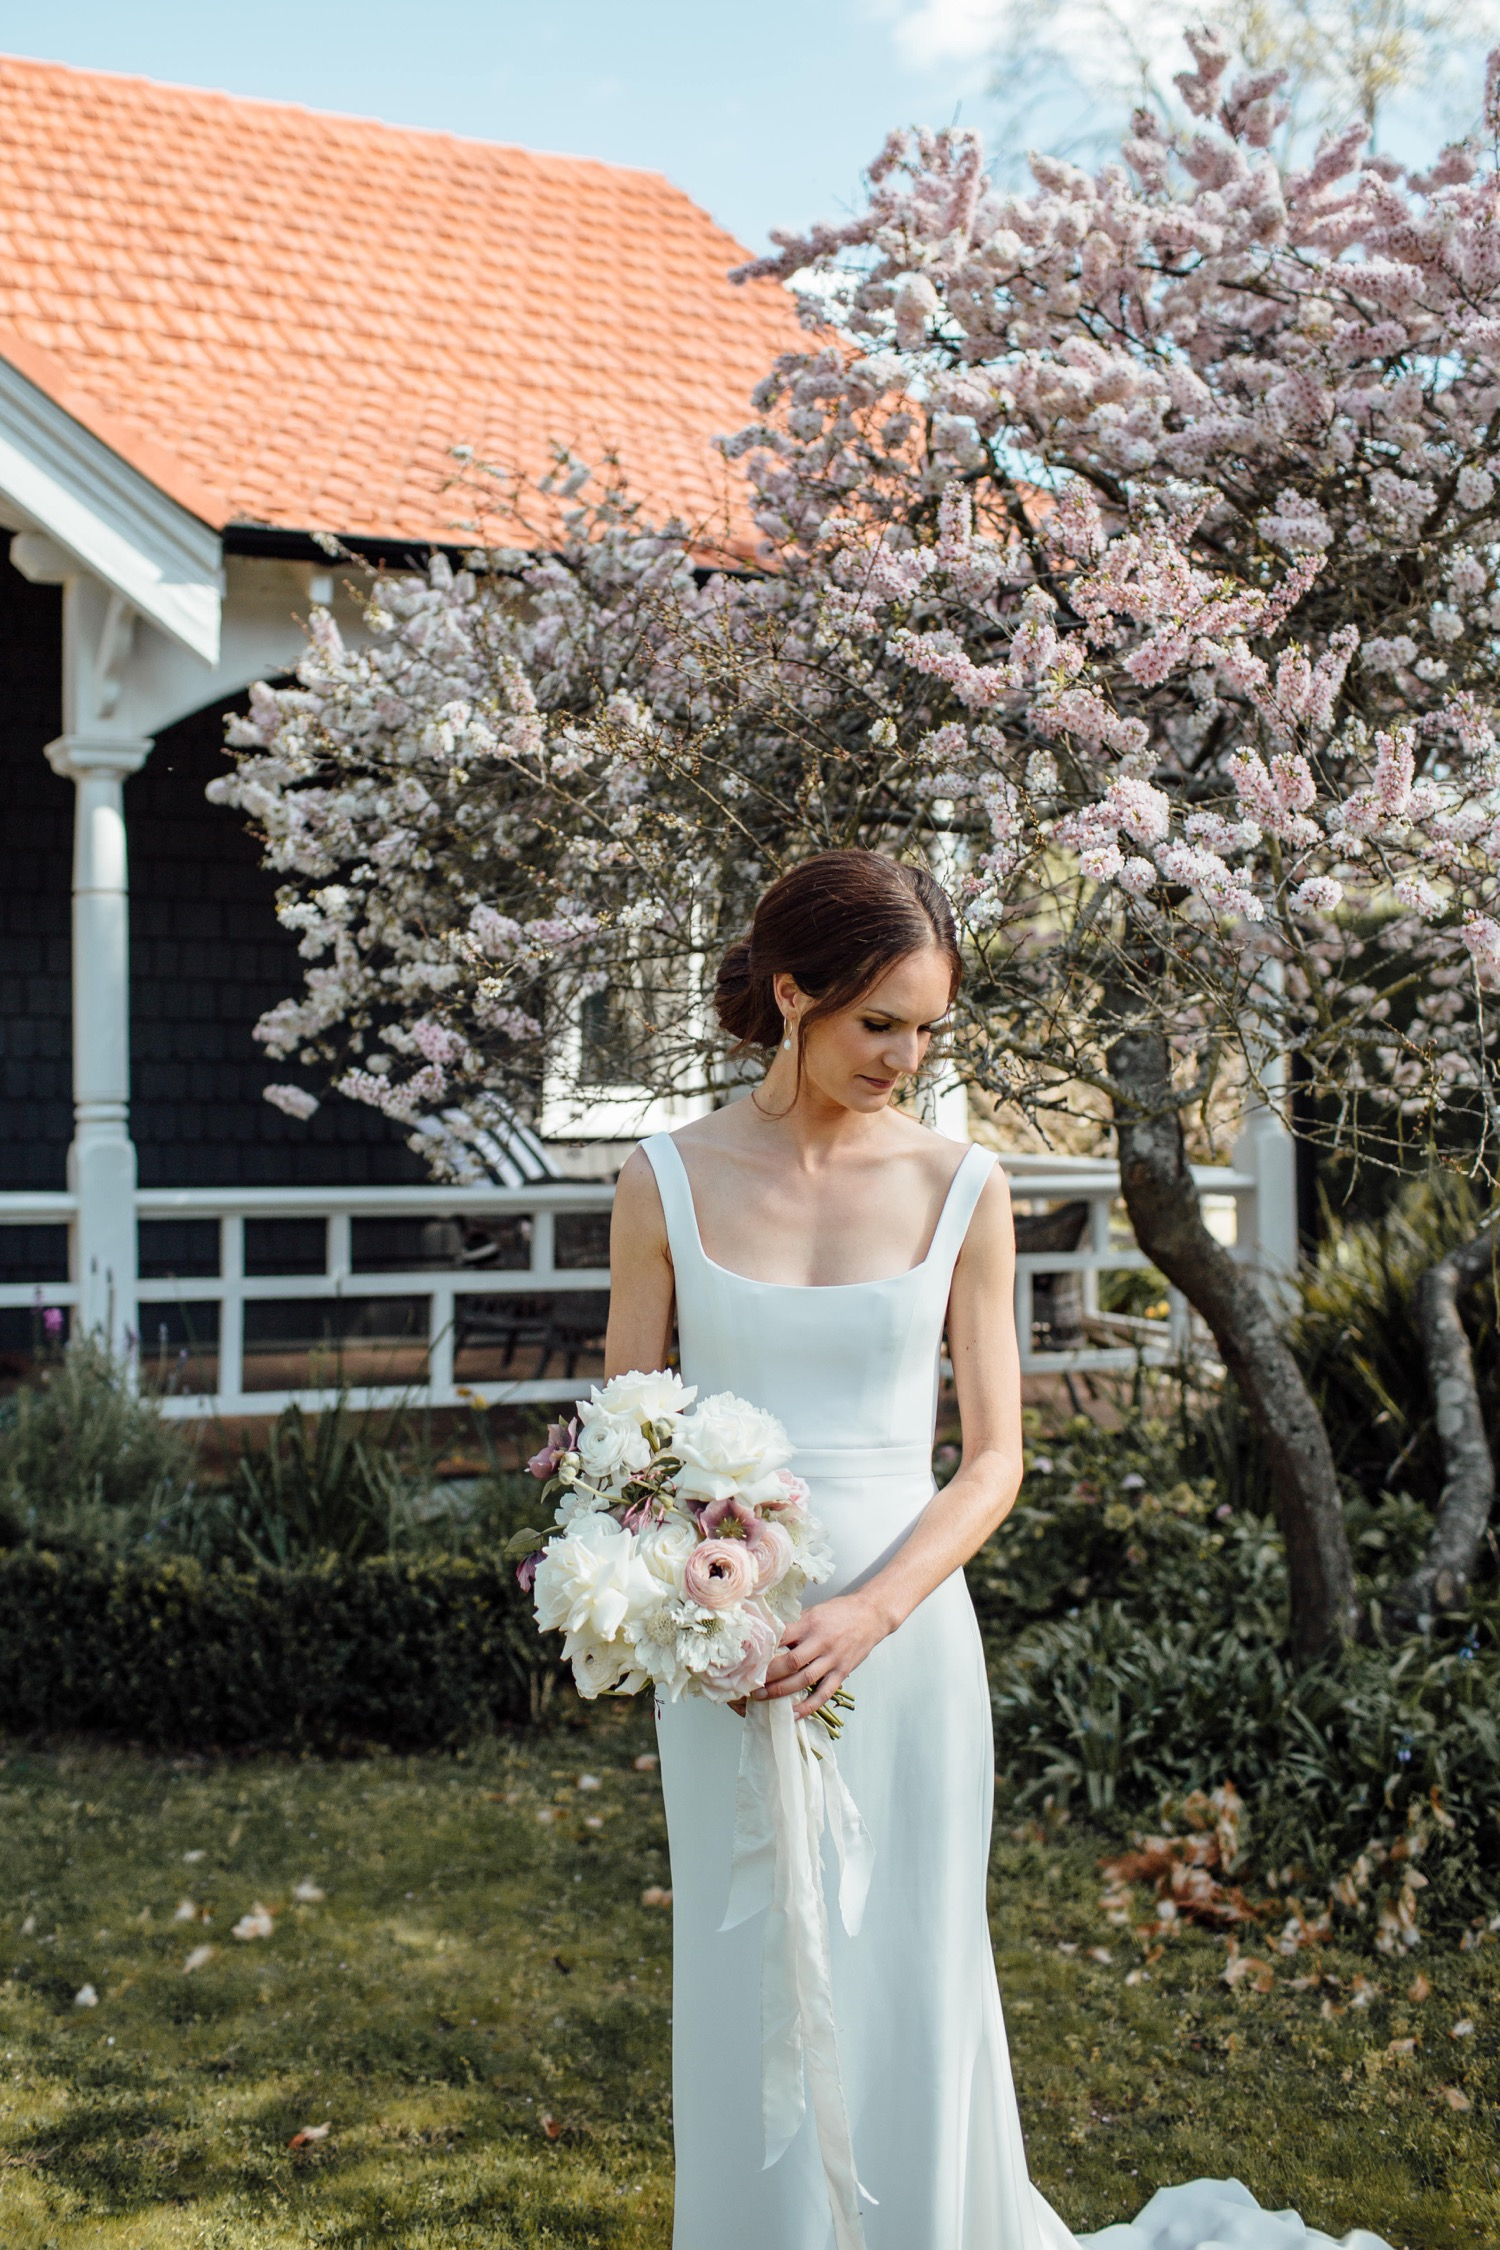 Southern Highlands bride wearing Alexandra Grecco wedding dress with flowers by Emma Blake Floral